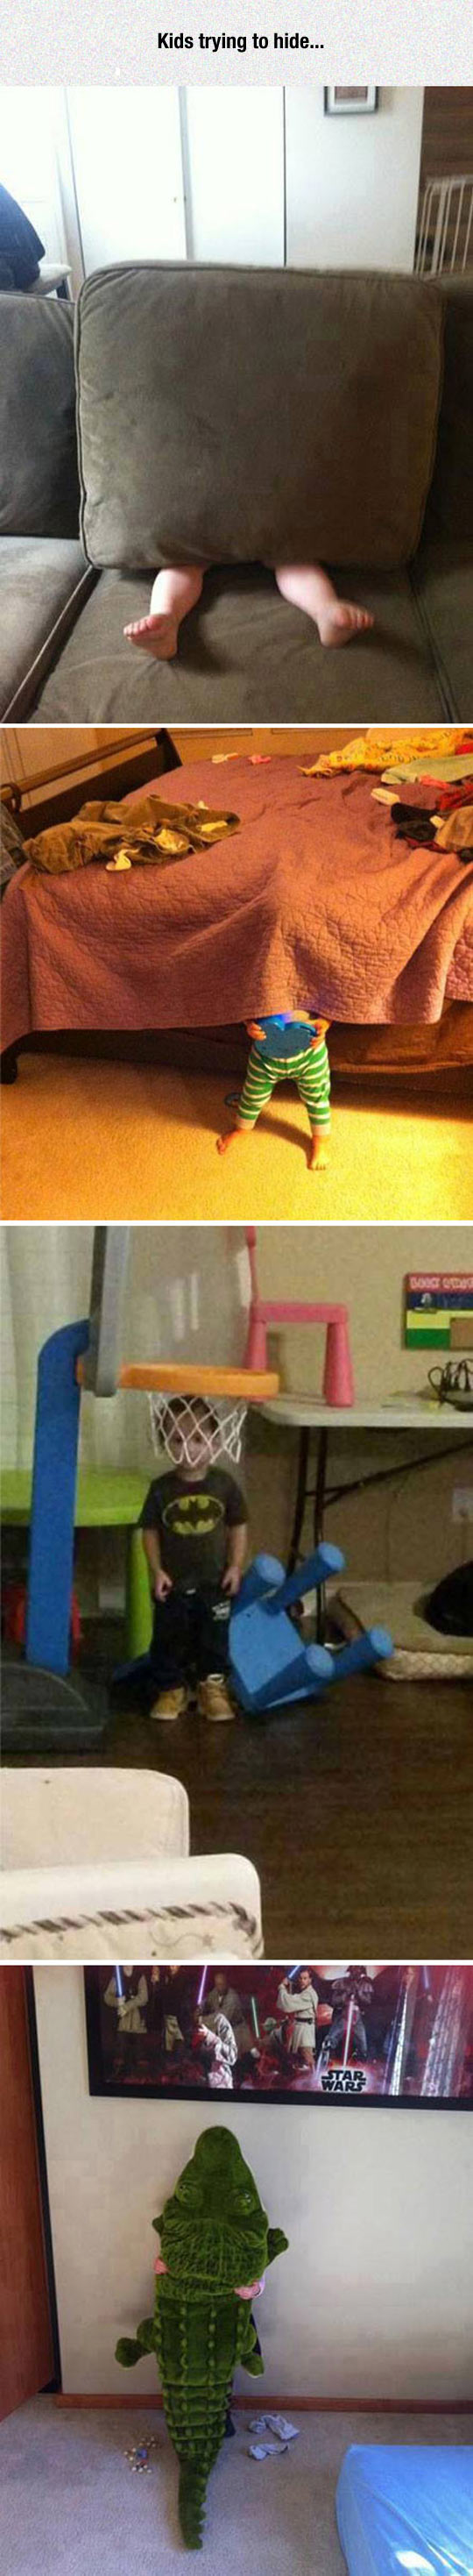 funny-kids-hide-seek-bad-places